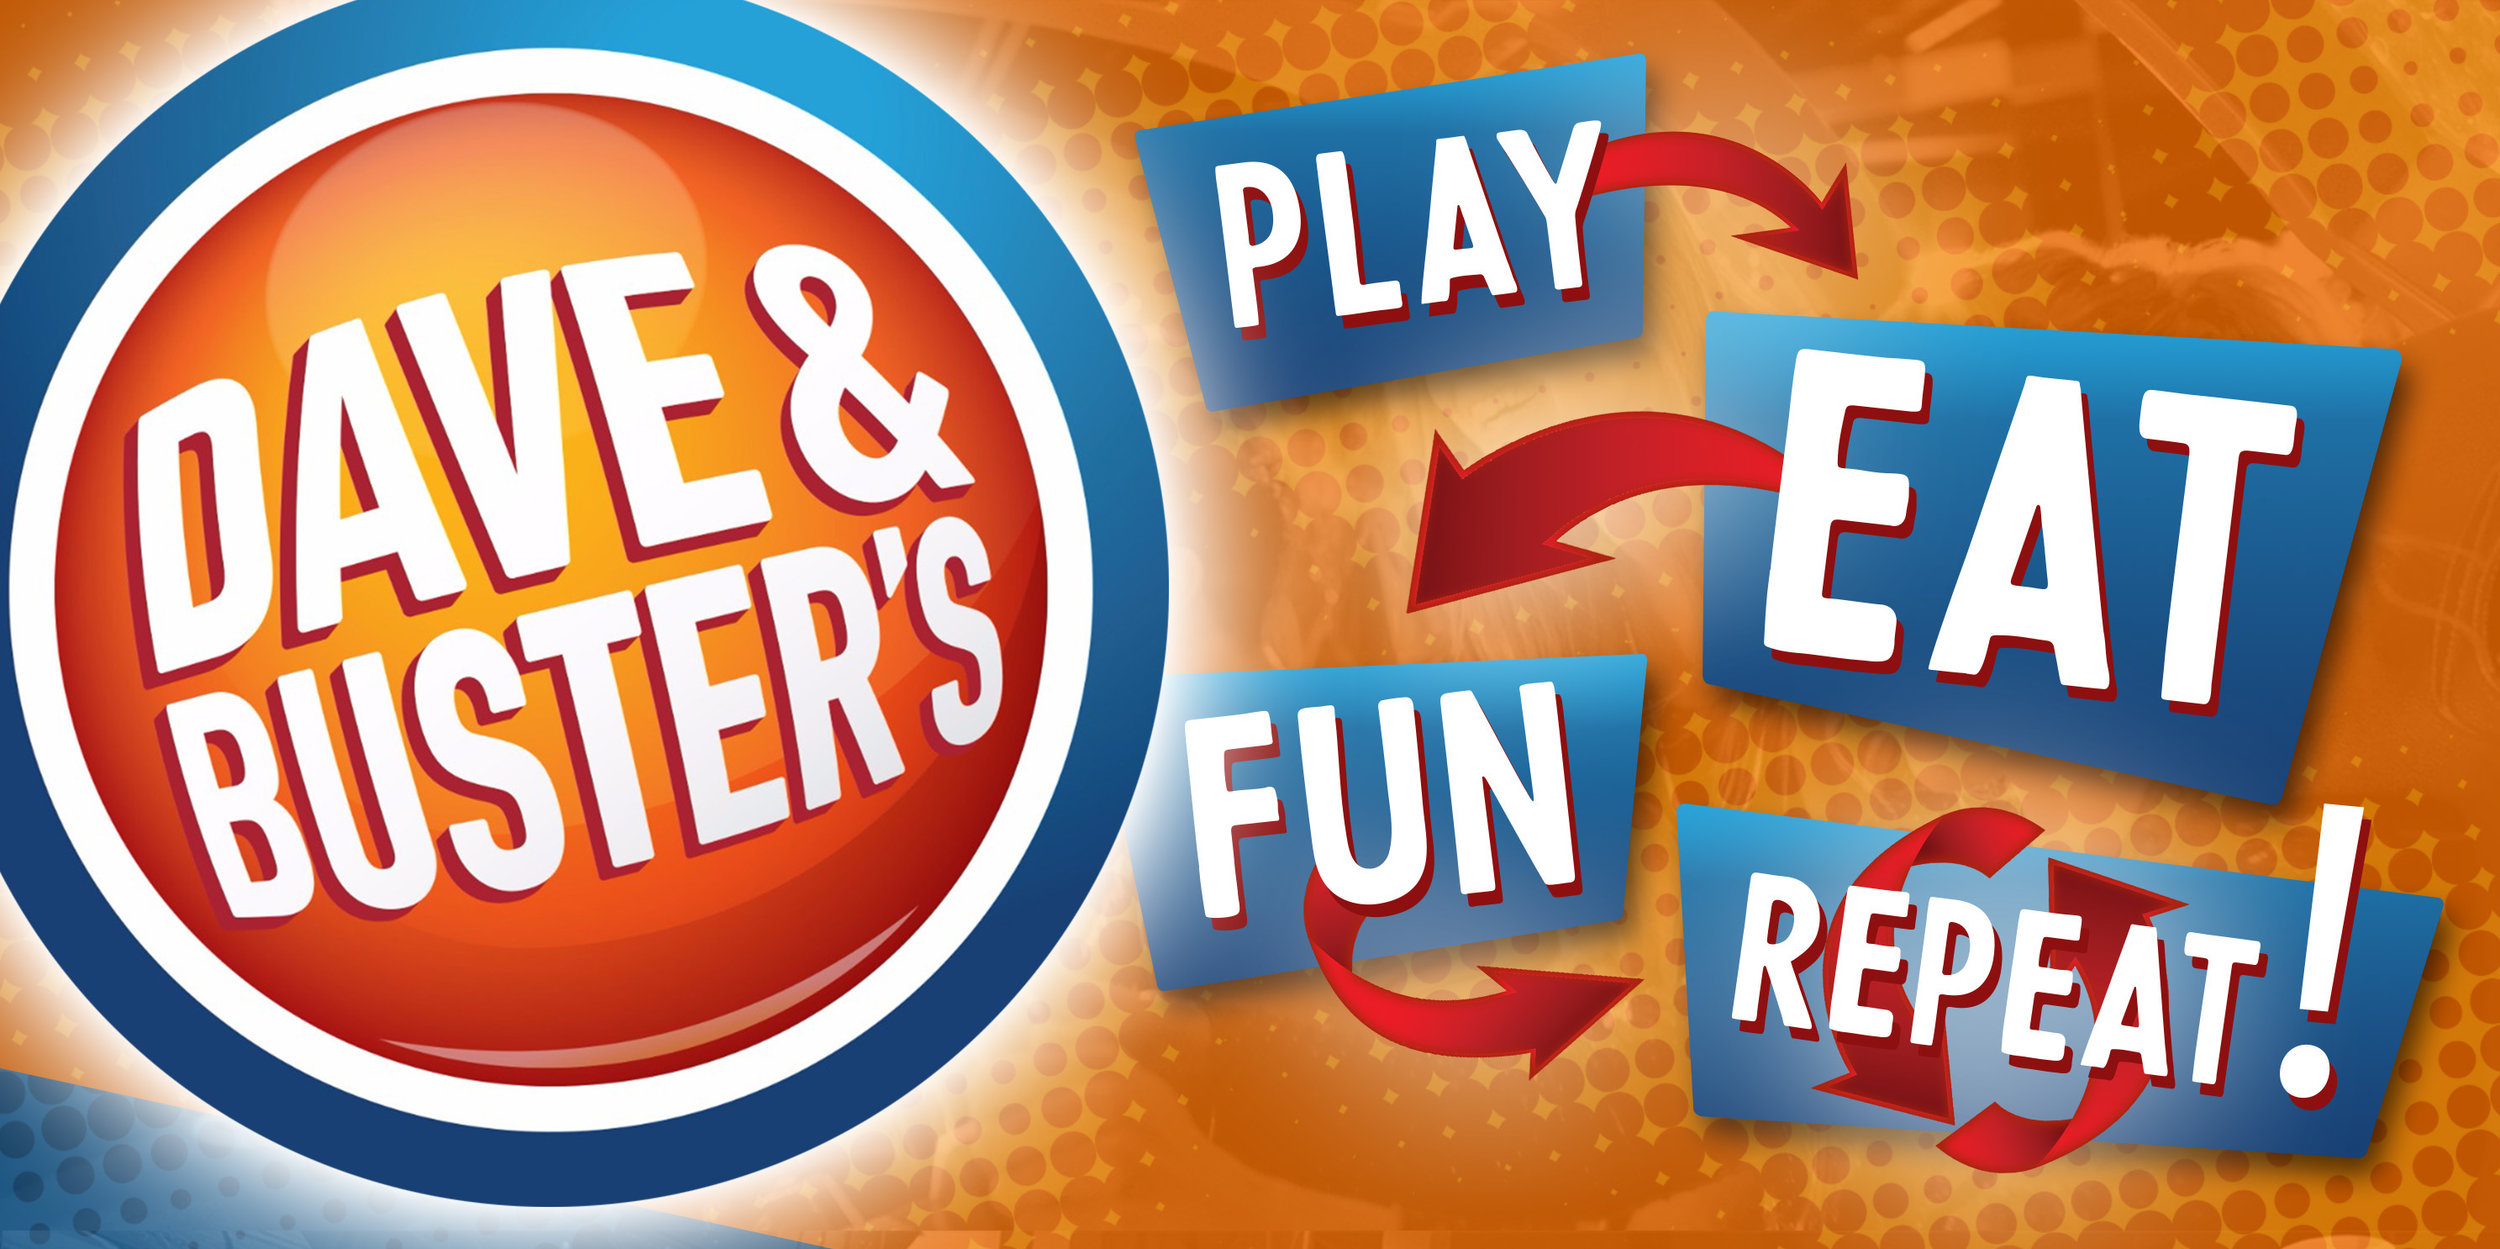 Dave & Buster's Beliefs